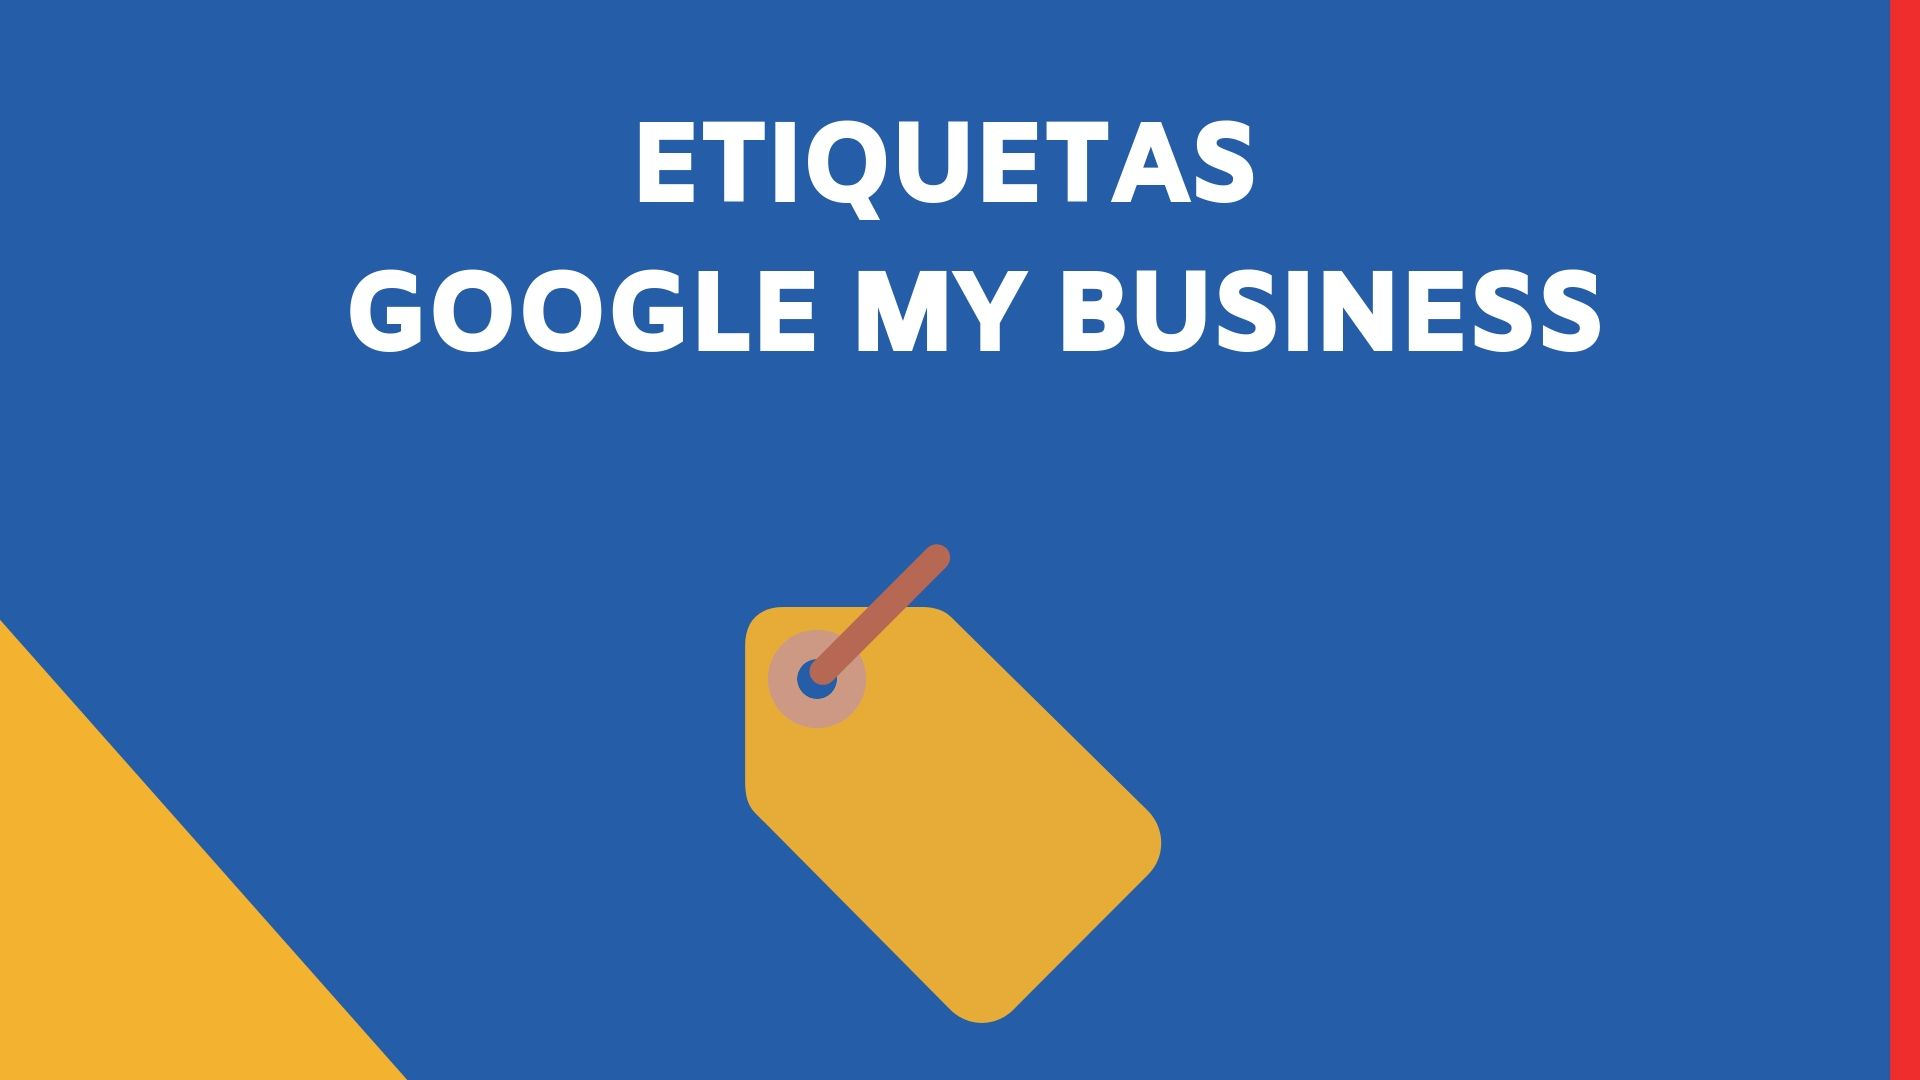 Etiquetas de Google My Business